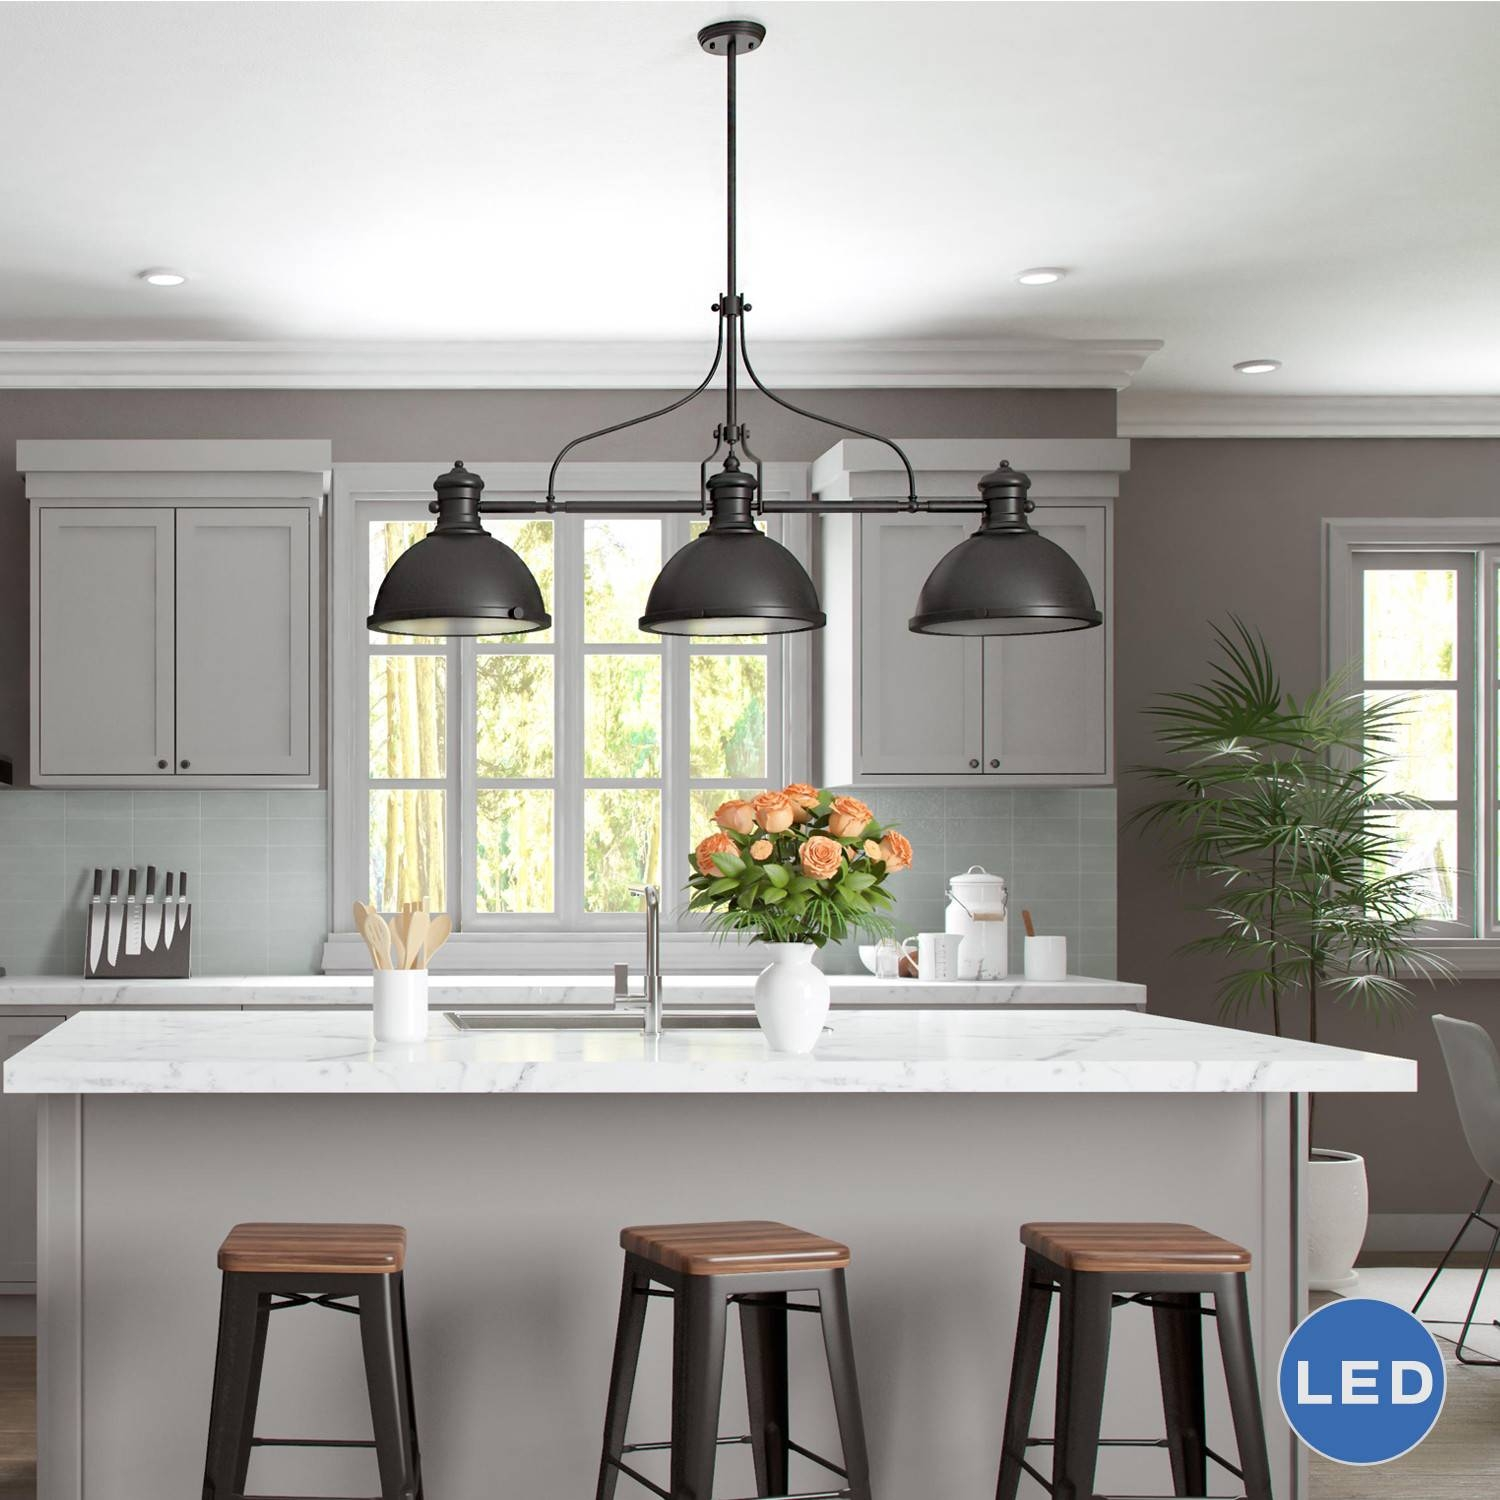 3 Light Pendant Island Kitchen Lighting Concept | The Latest Inside 3 Light Pendants For Island Kitchen Lighting (View 1 of 15)